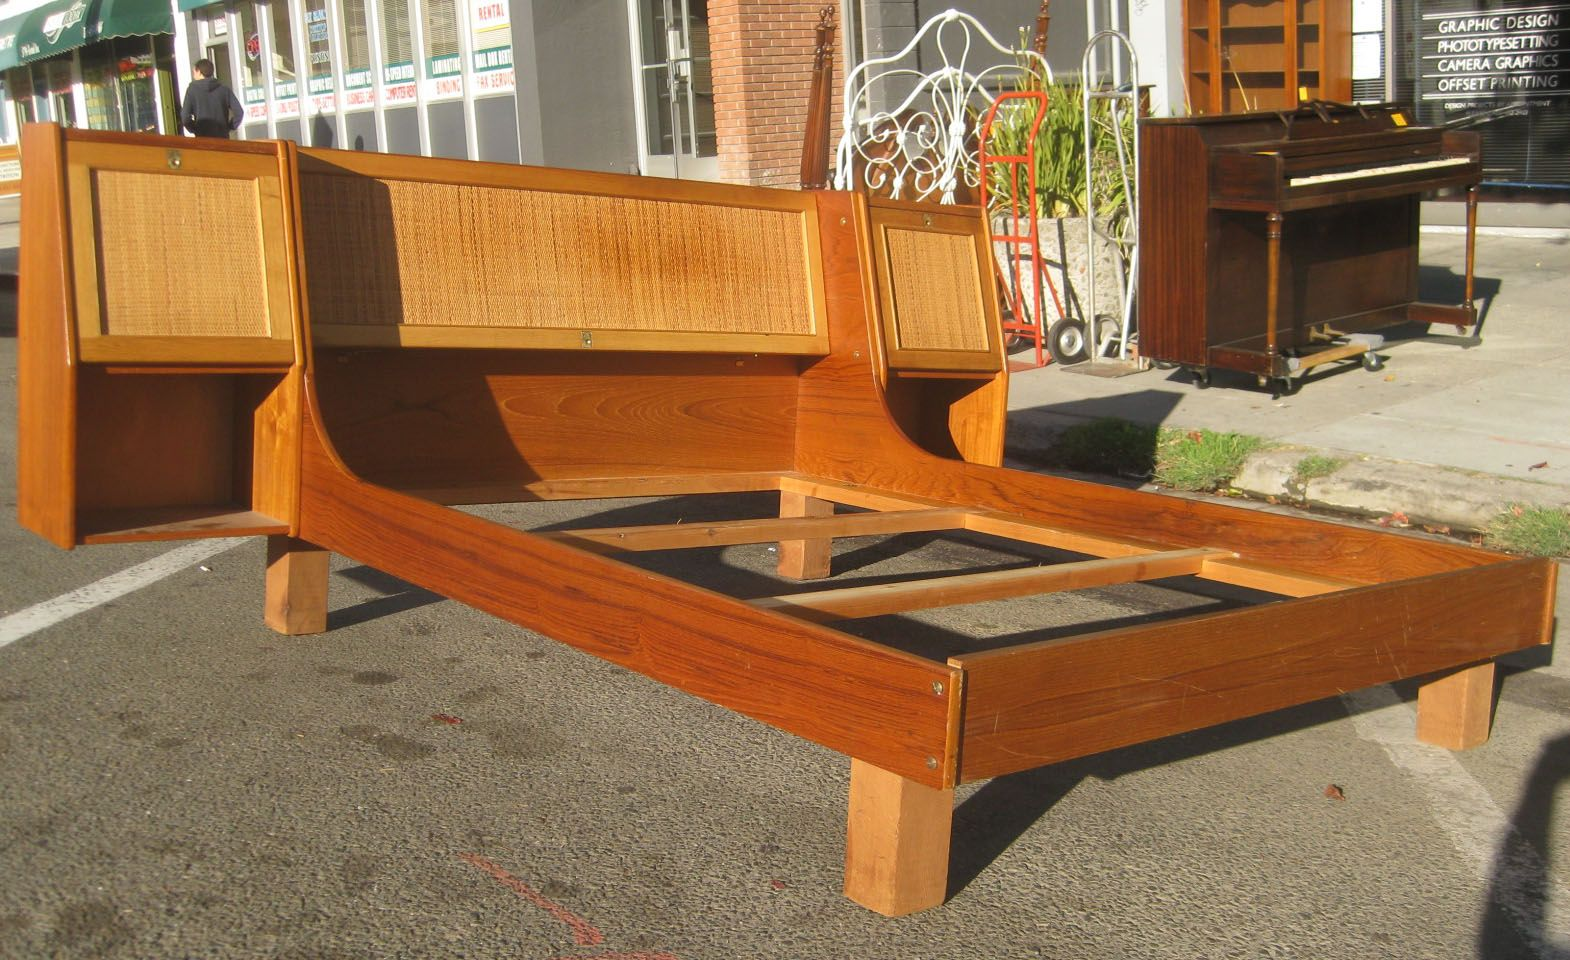 Mid century modern furniture posted by uhuru furniture collectibles oakland at 720 pm